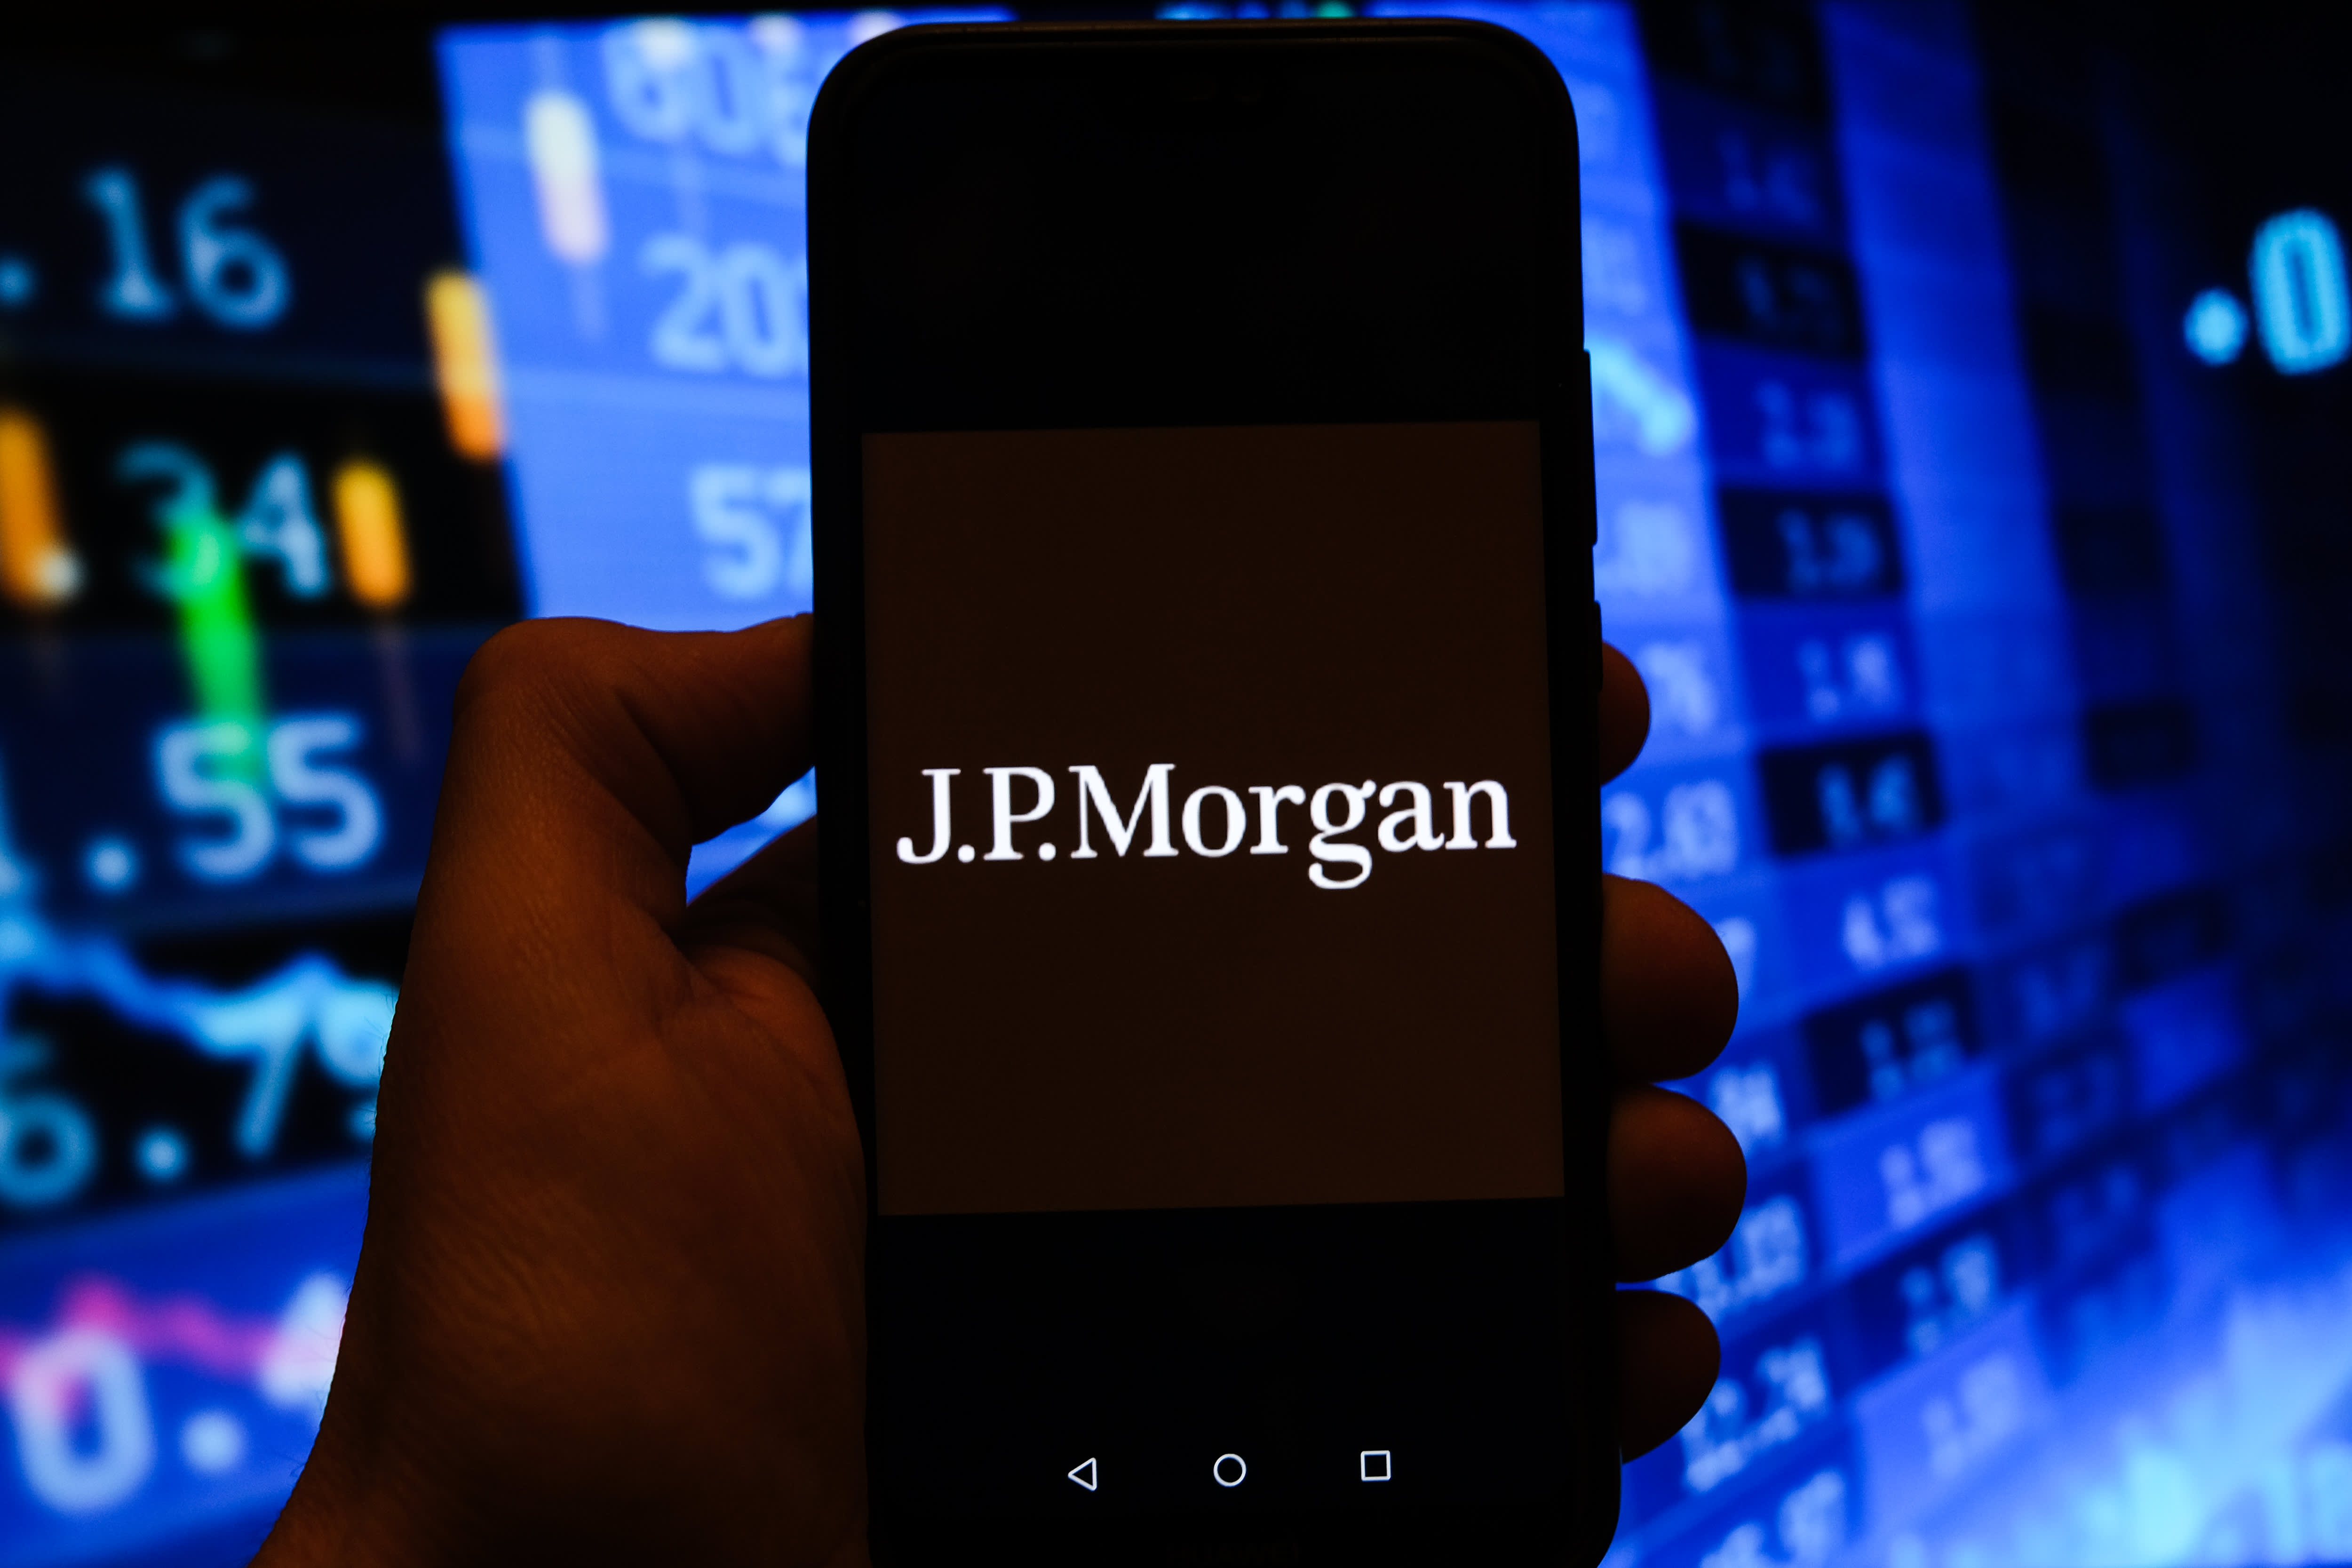 Bubble or no bubble, JPMorgan names the shares to purchase within the dips